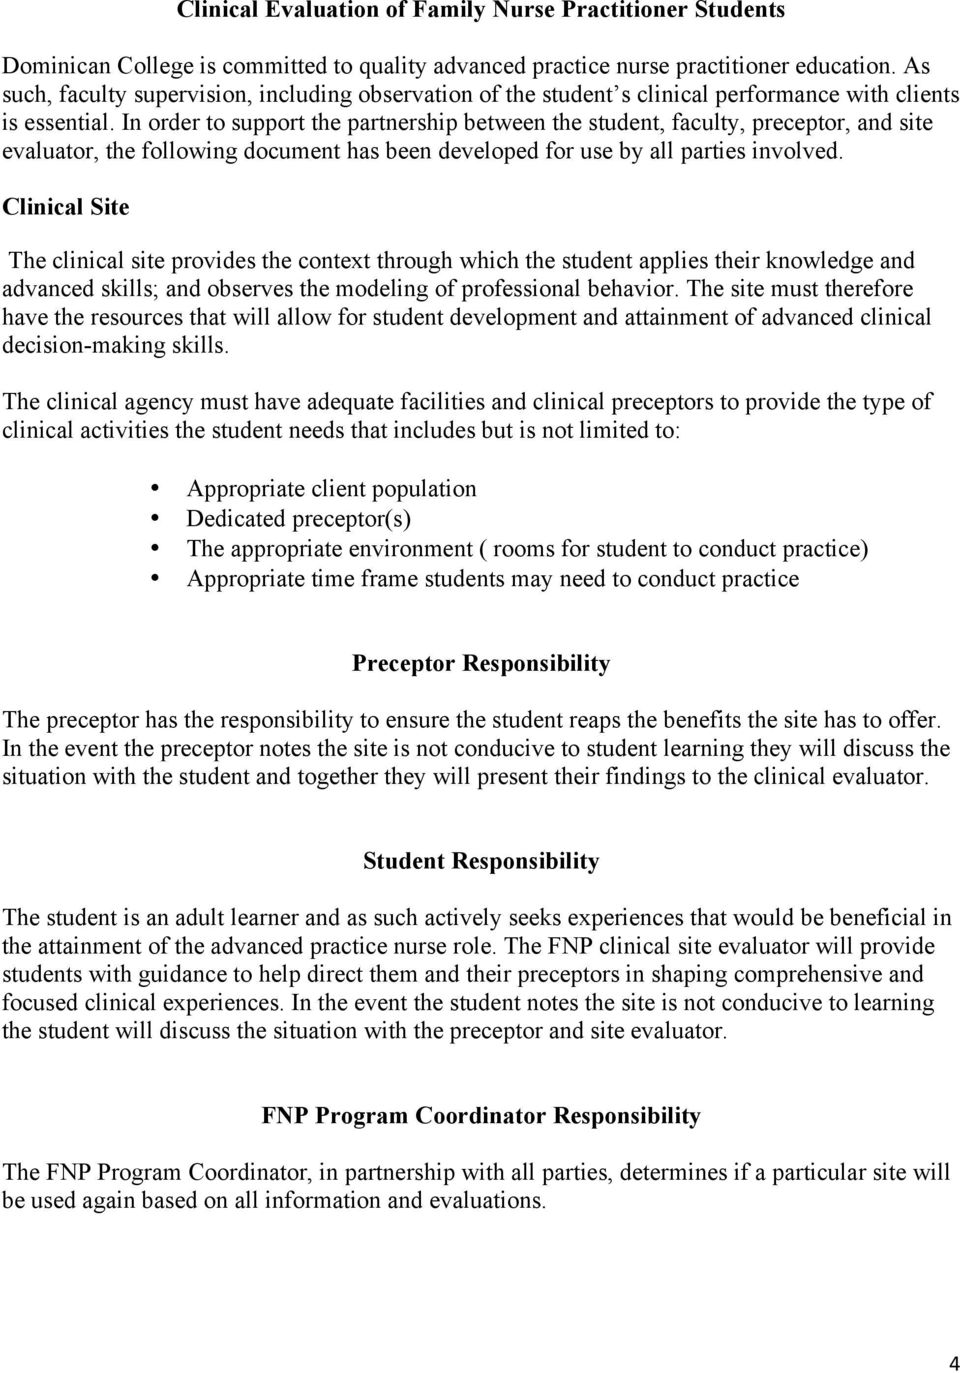 In order to support the partnership between the student, faculty, preceptor, and site evaluator, the following document has been developed for use by all parties involved.